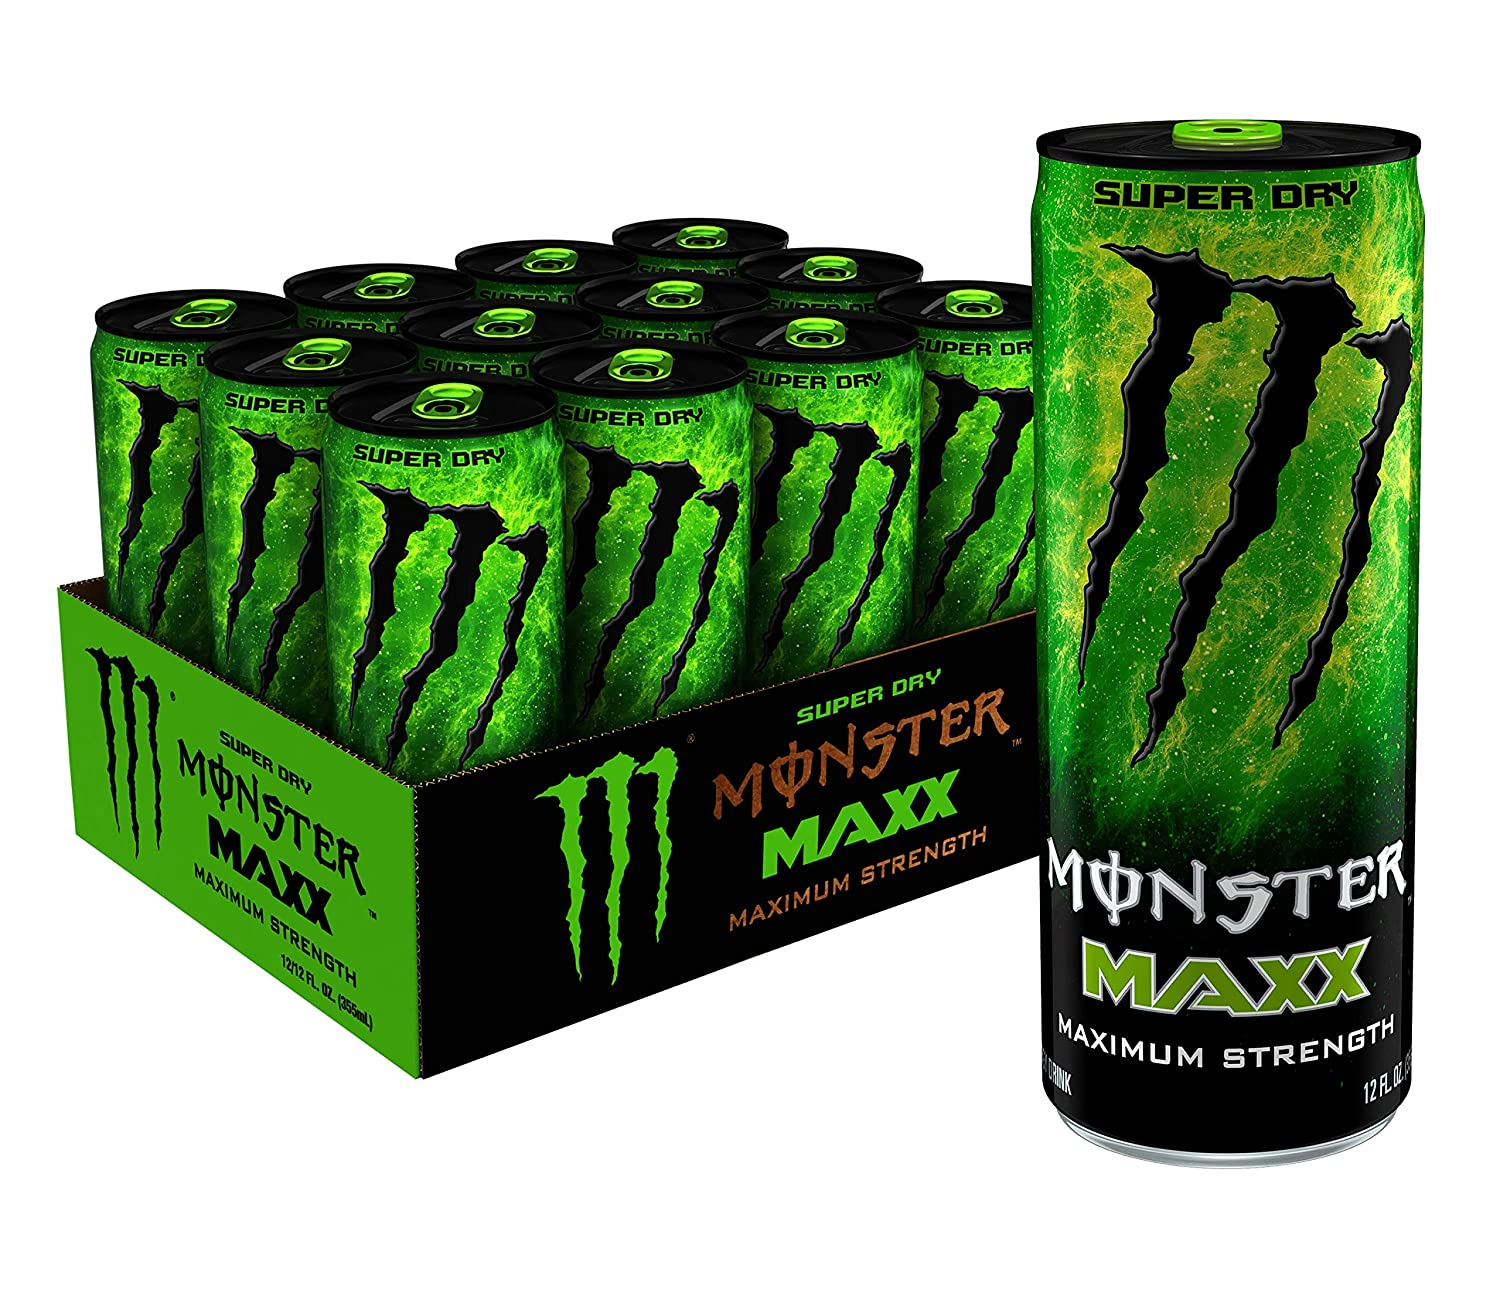 Amazon Com Maxx Monster Super Dry Maximum Strength Energy Drink 12 Ounce Pack Of 12 Grocery Gourmet Food